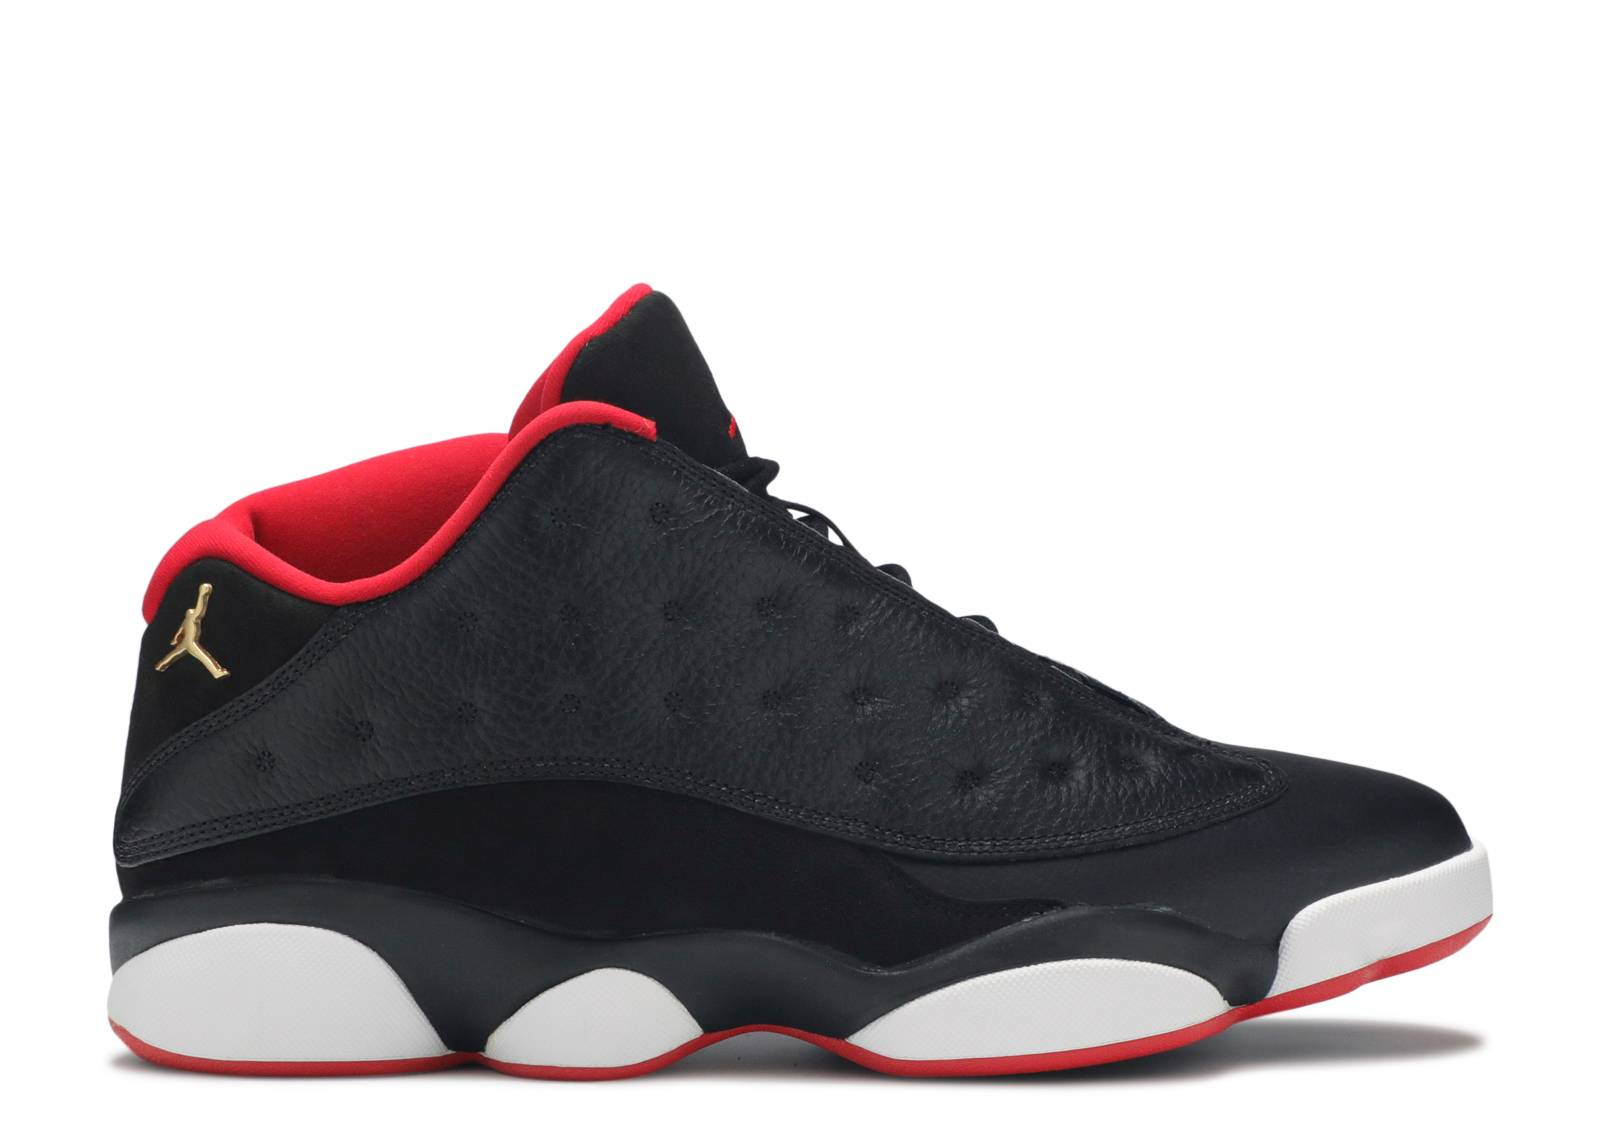 7c0cb94732ca Air Jordan 13 Retro Low